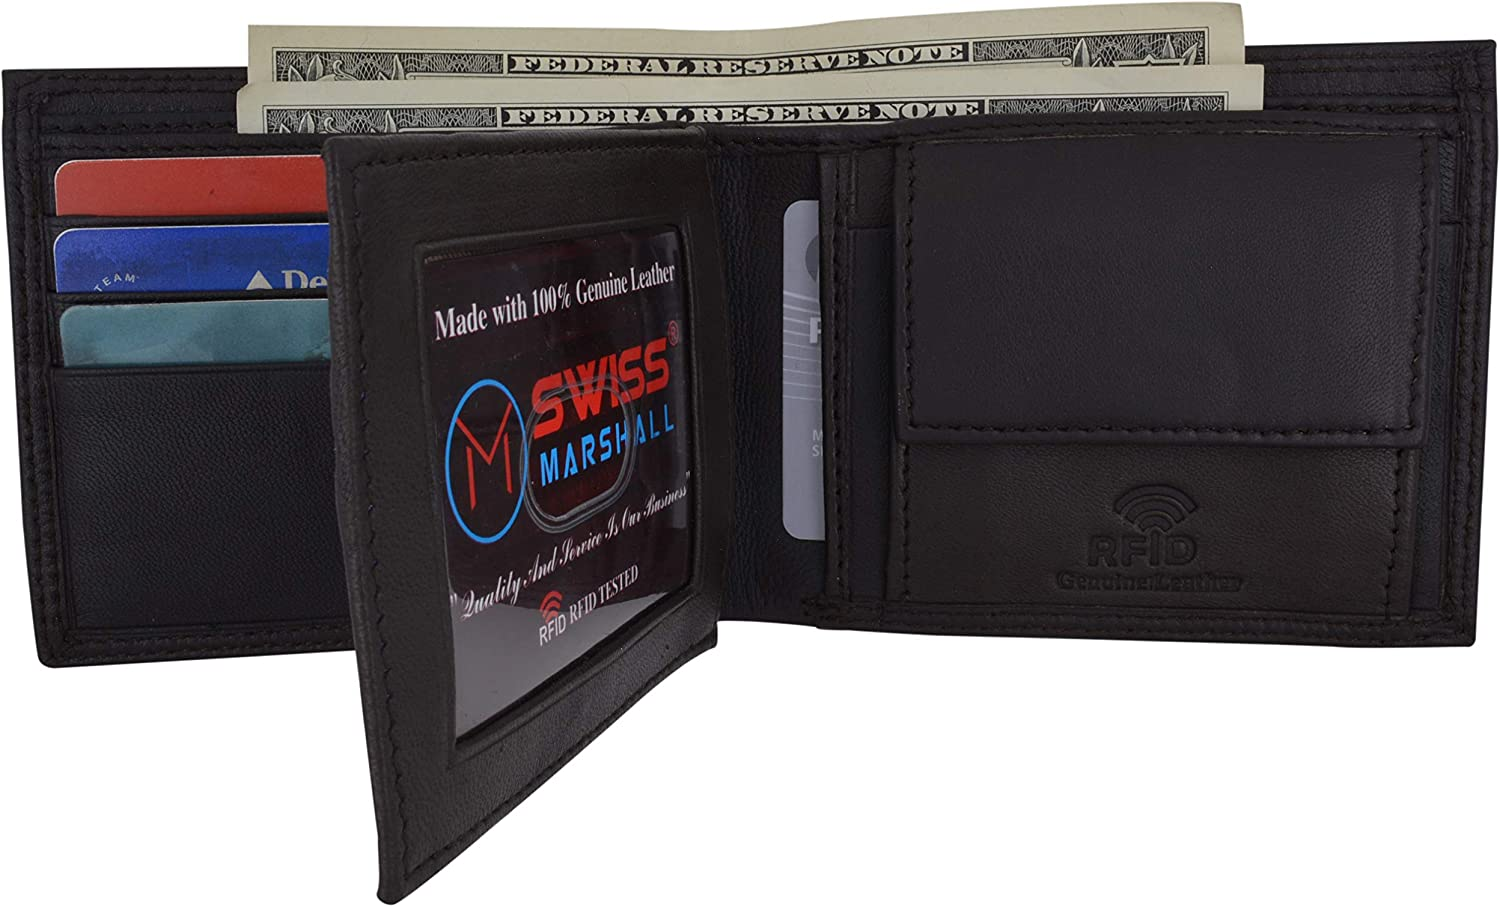 RFID Blocking Men's Bifold Premium Leather Credit Card ID Holder Wallet with Coin Pouch by Swiss Marshall